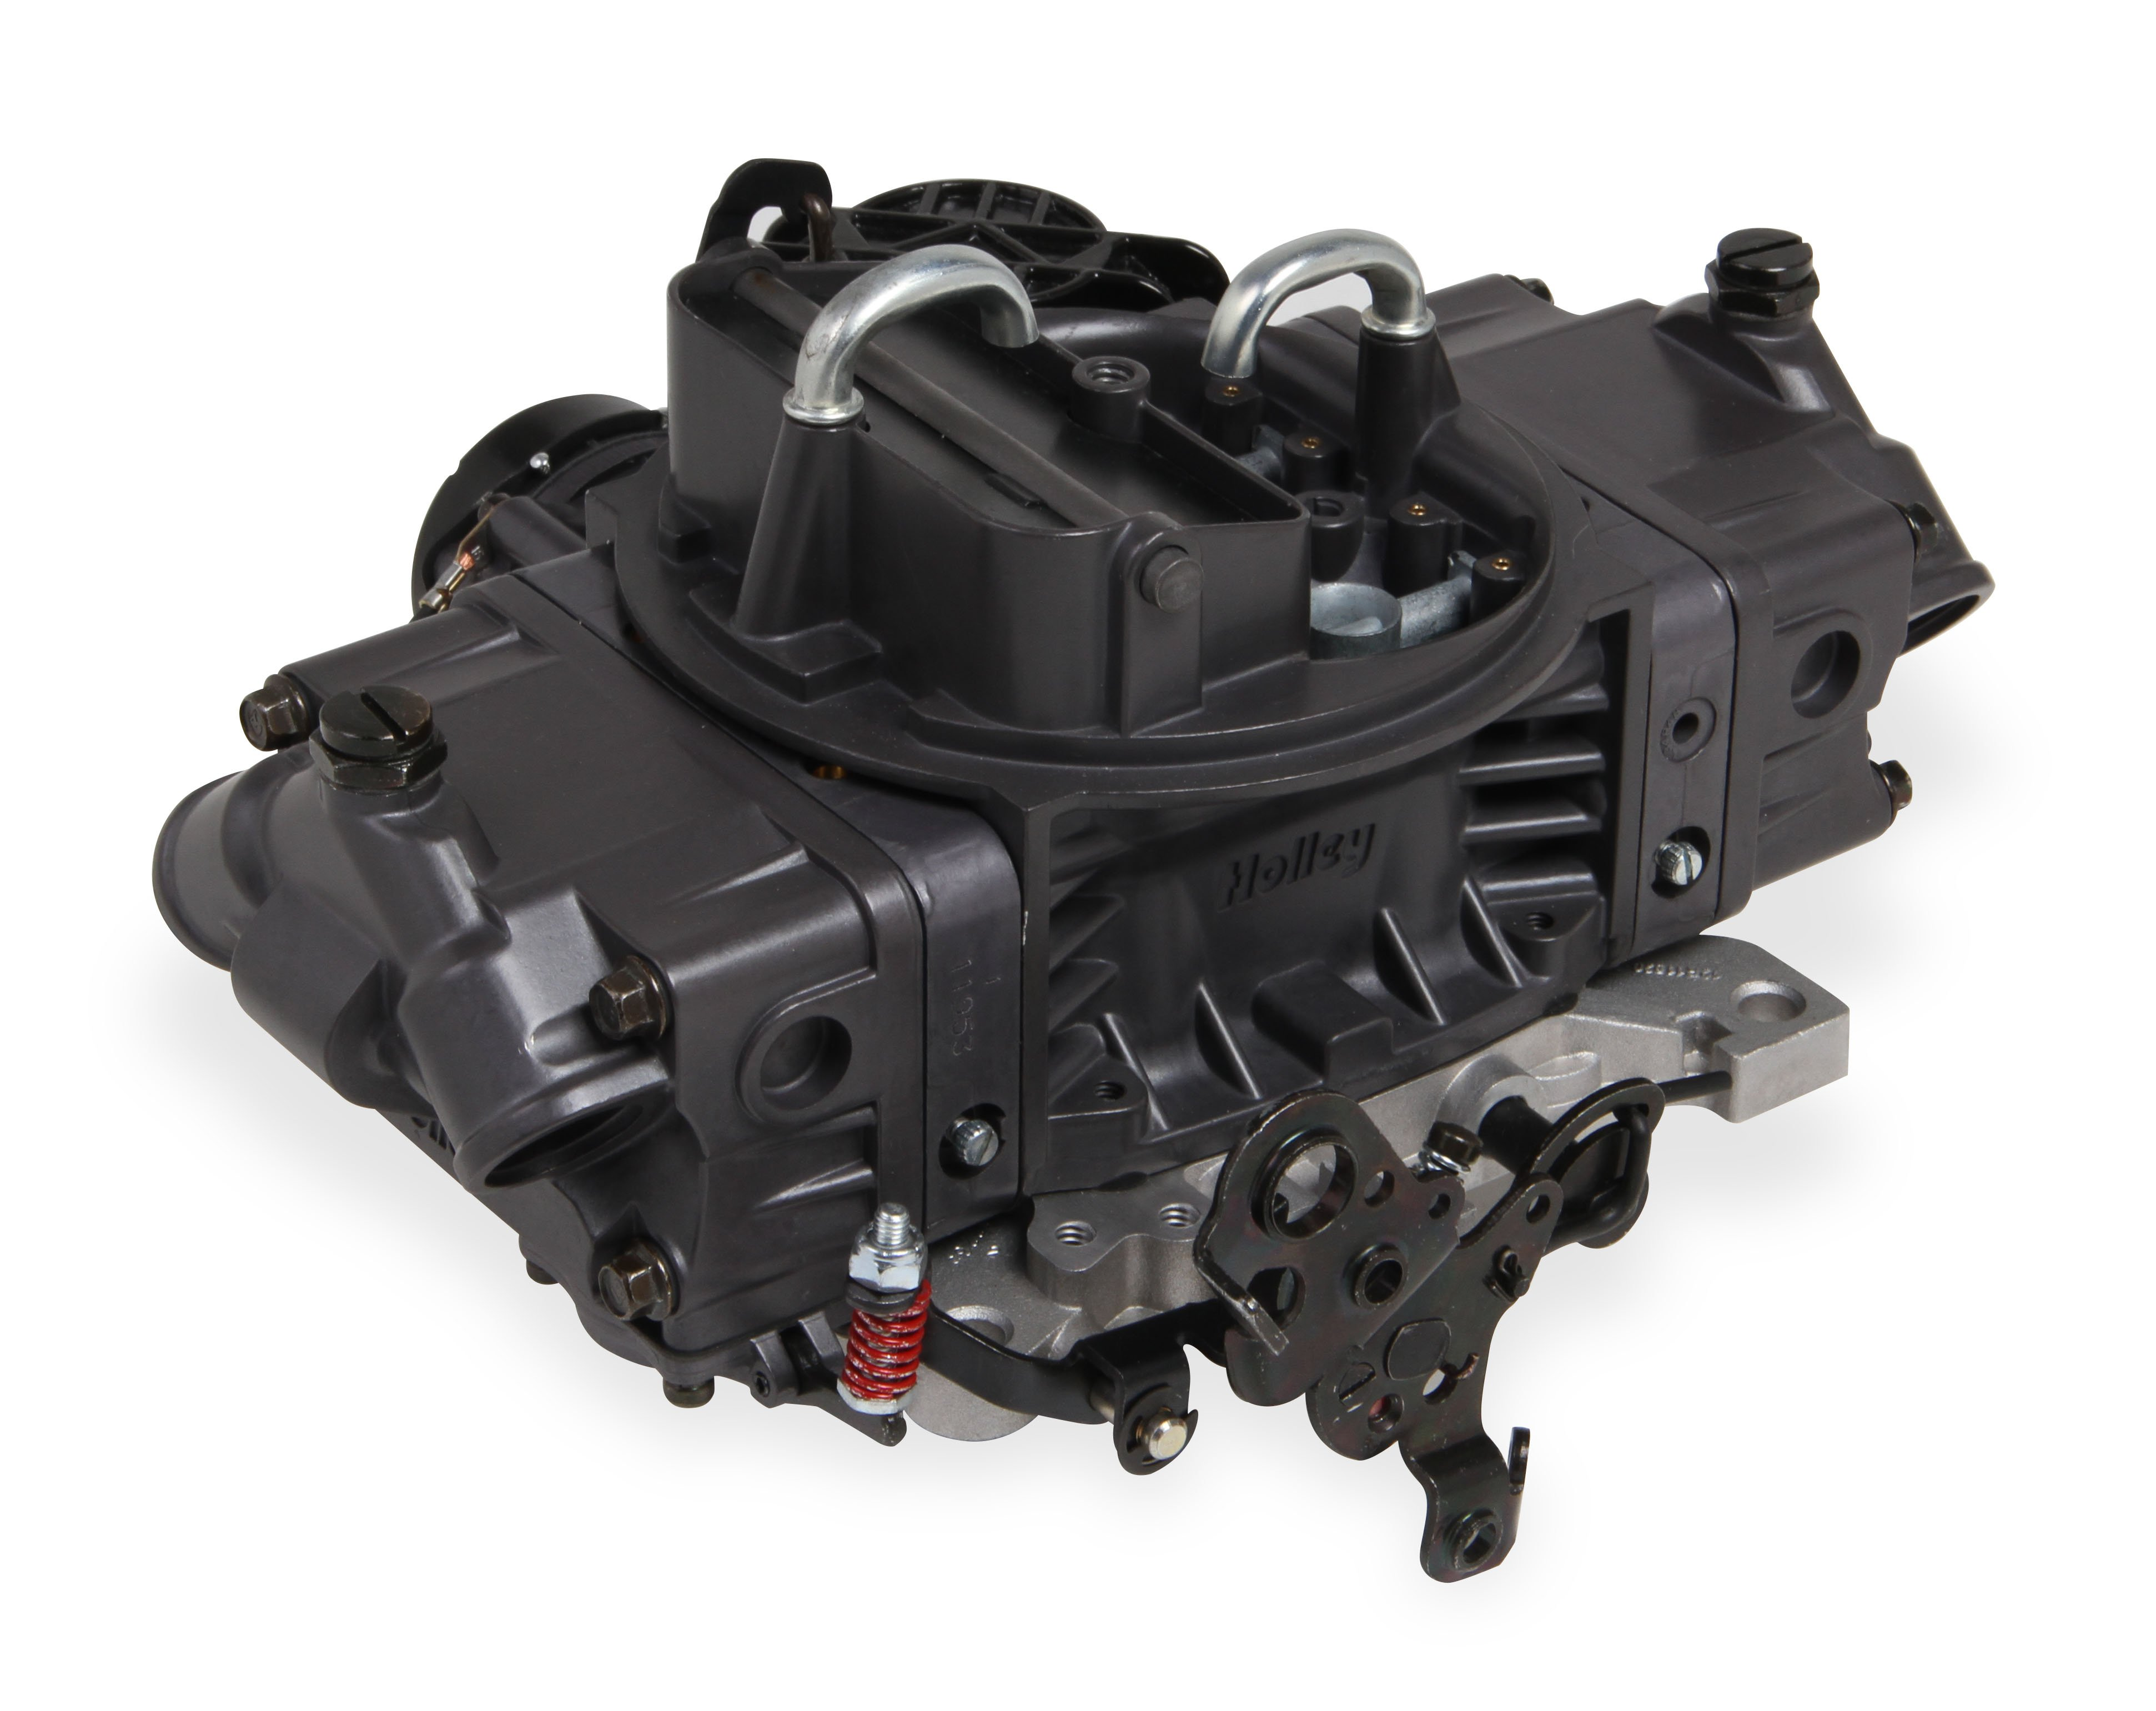 Marine Carburetors Holley Performance Products Fuel Injected 350 Mercruiser Engine Diagram 570 Cfm Aluminum Avenger Carburetor